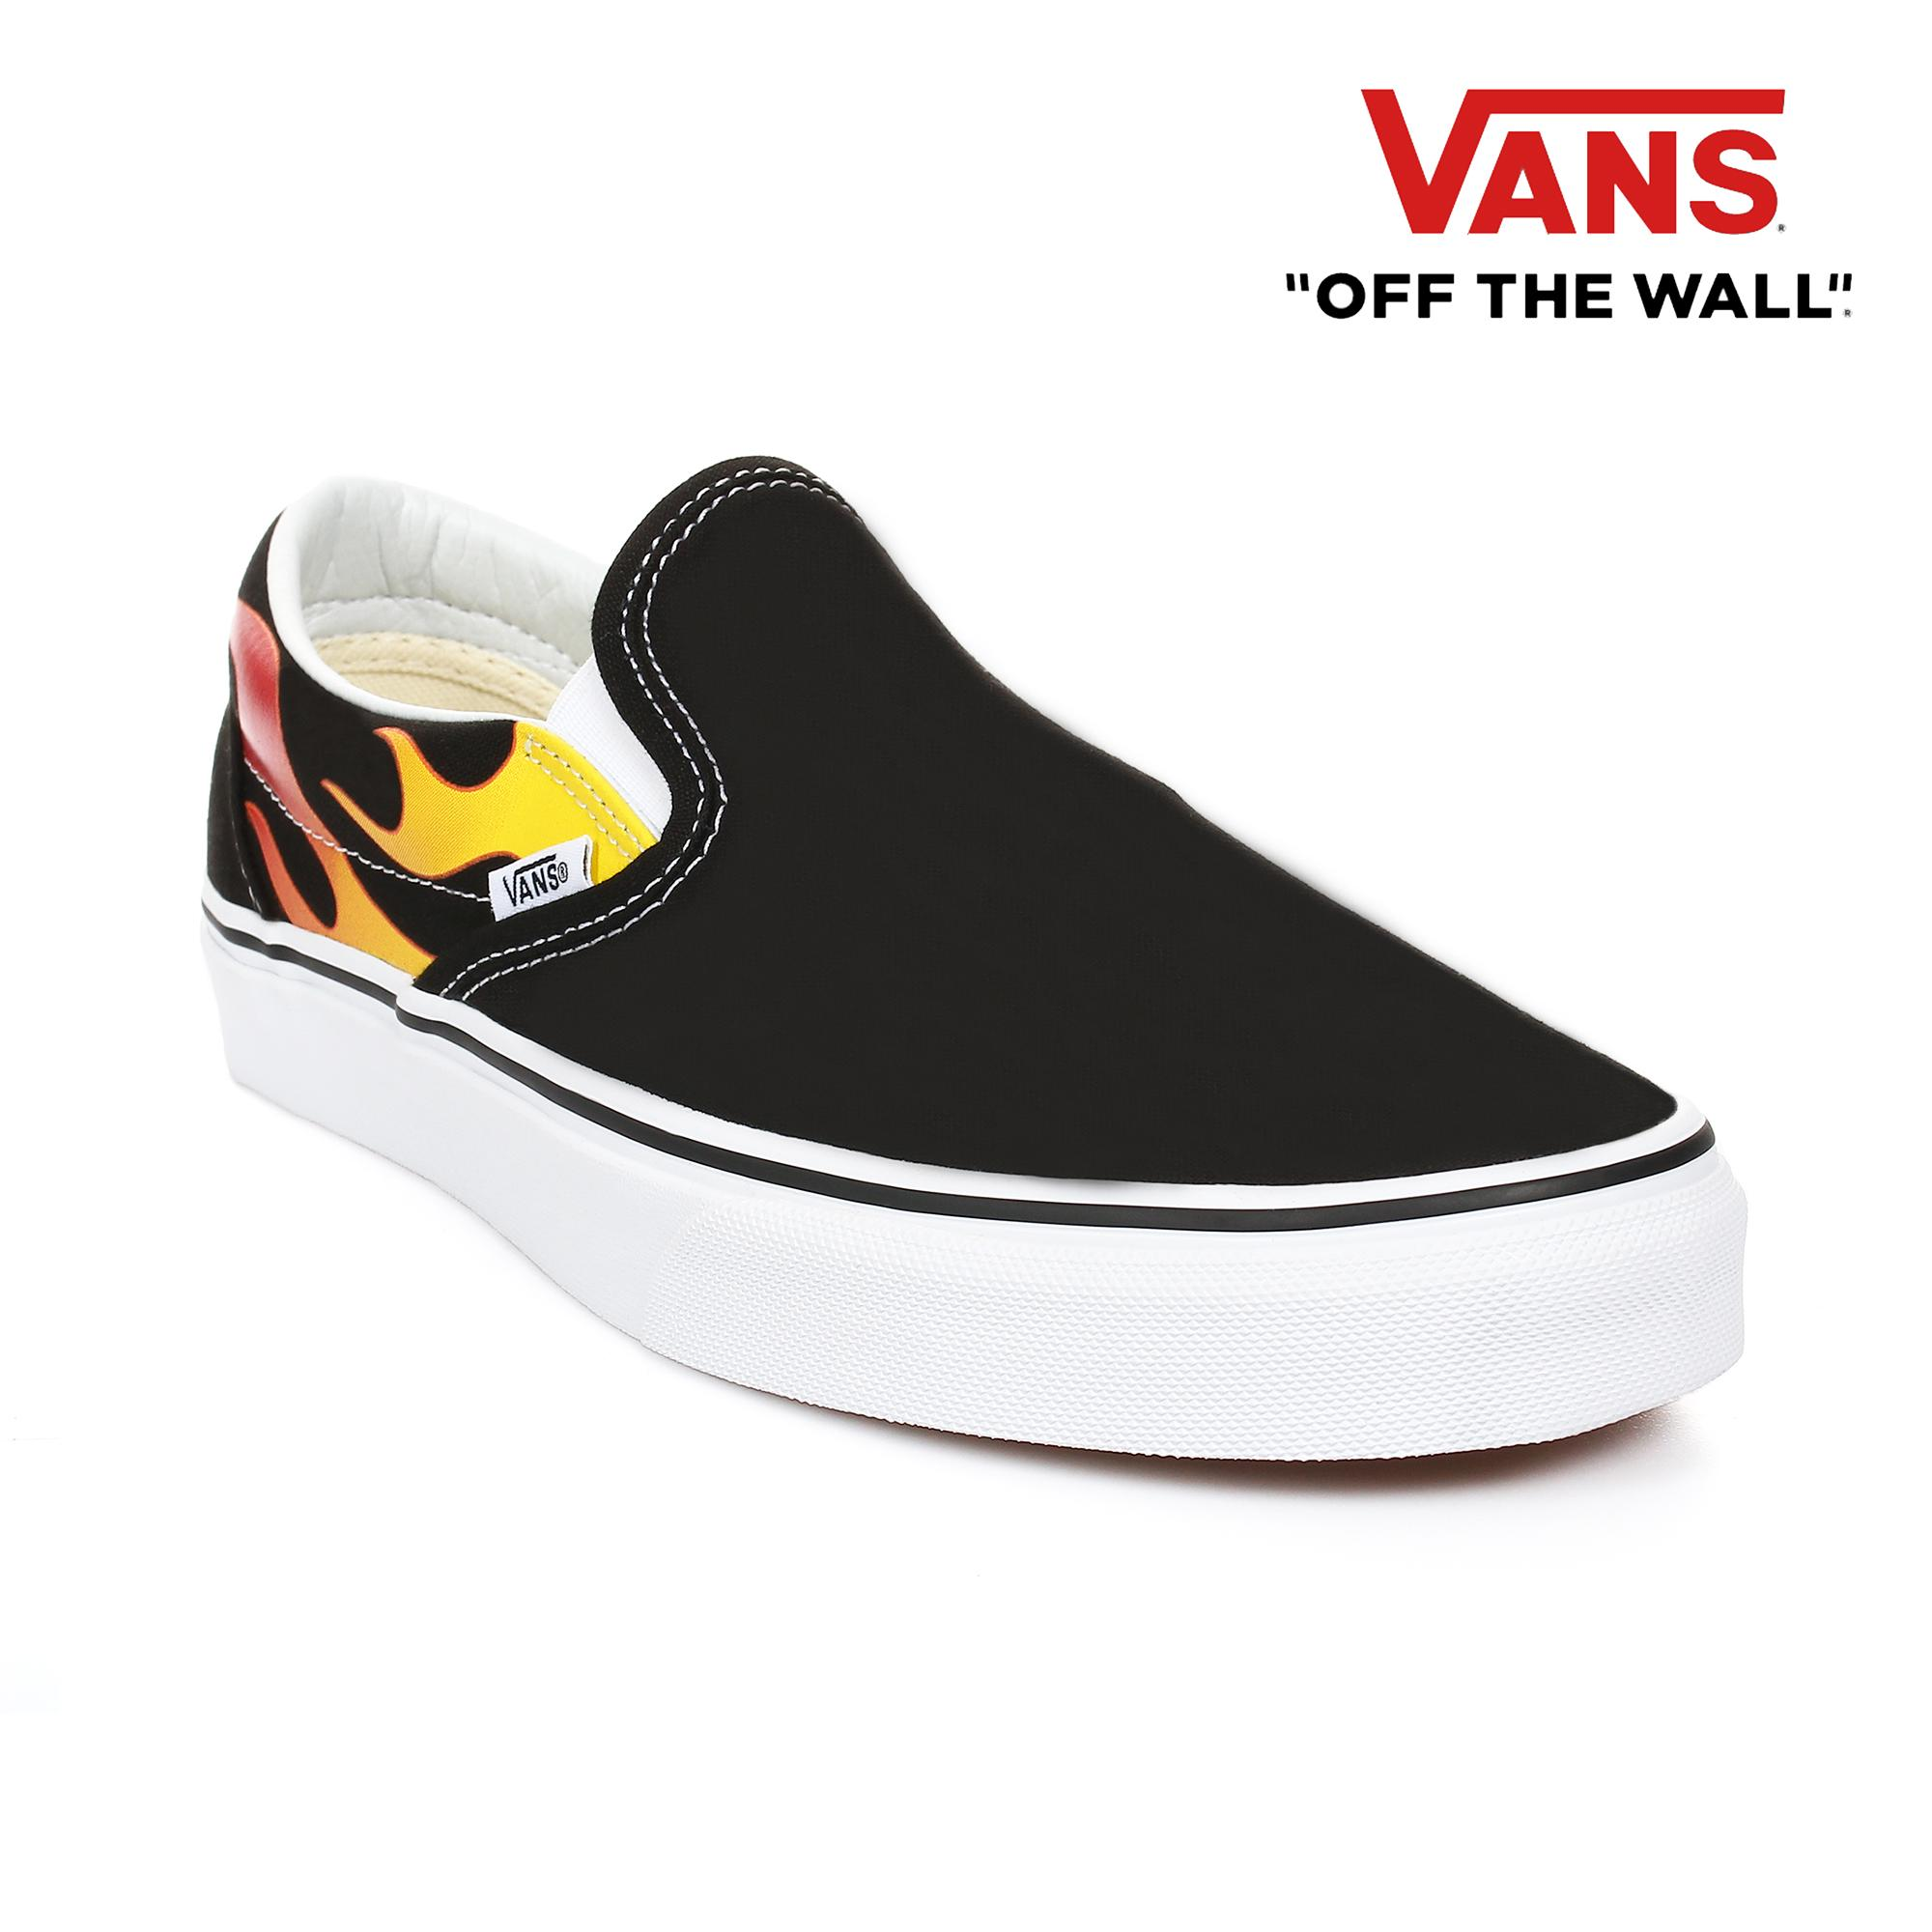 815c4f61efa Vans Shoes for Men Philippines - Vans Men s Shoes for sale - prices ...